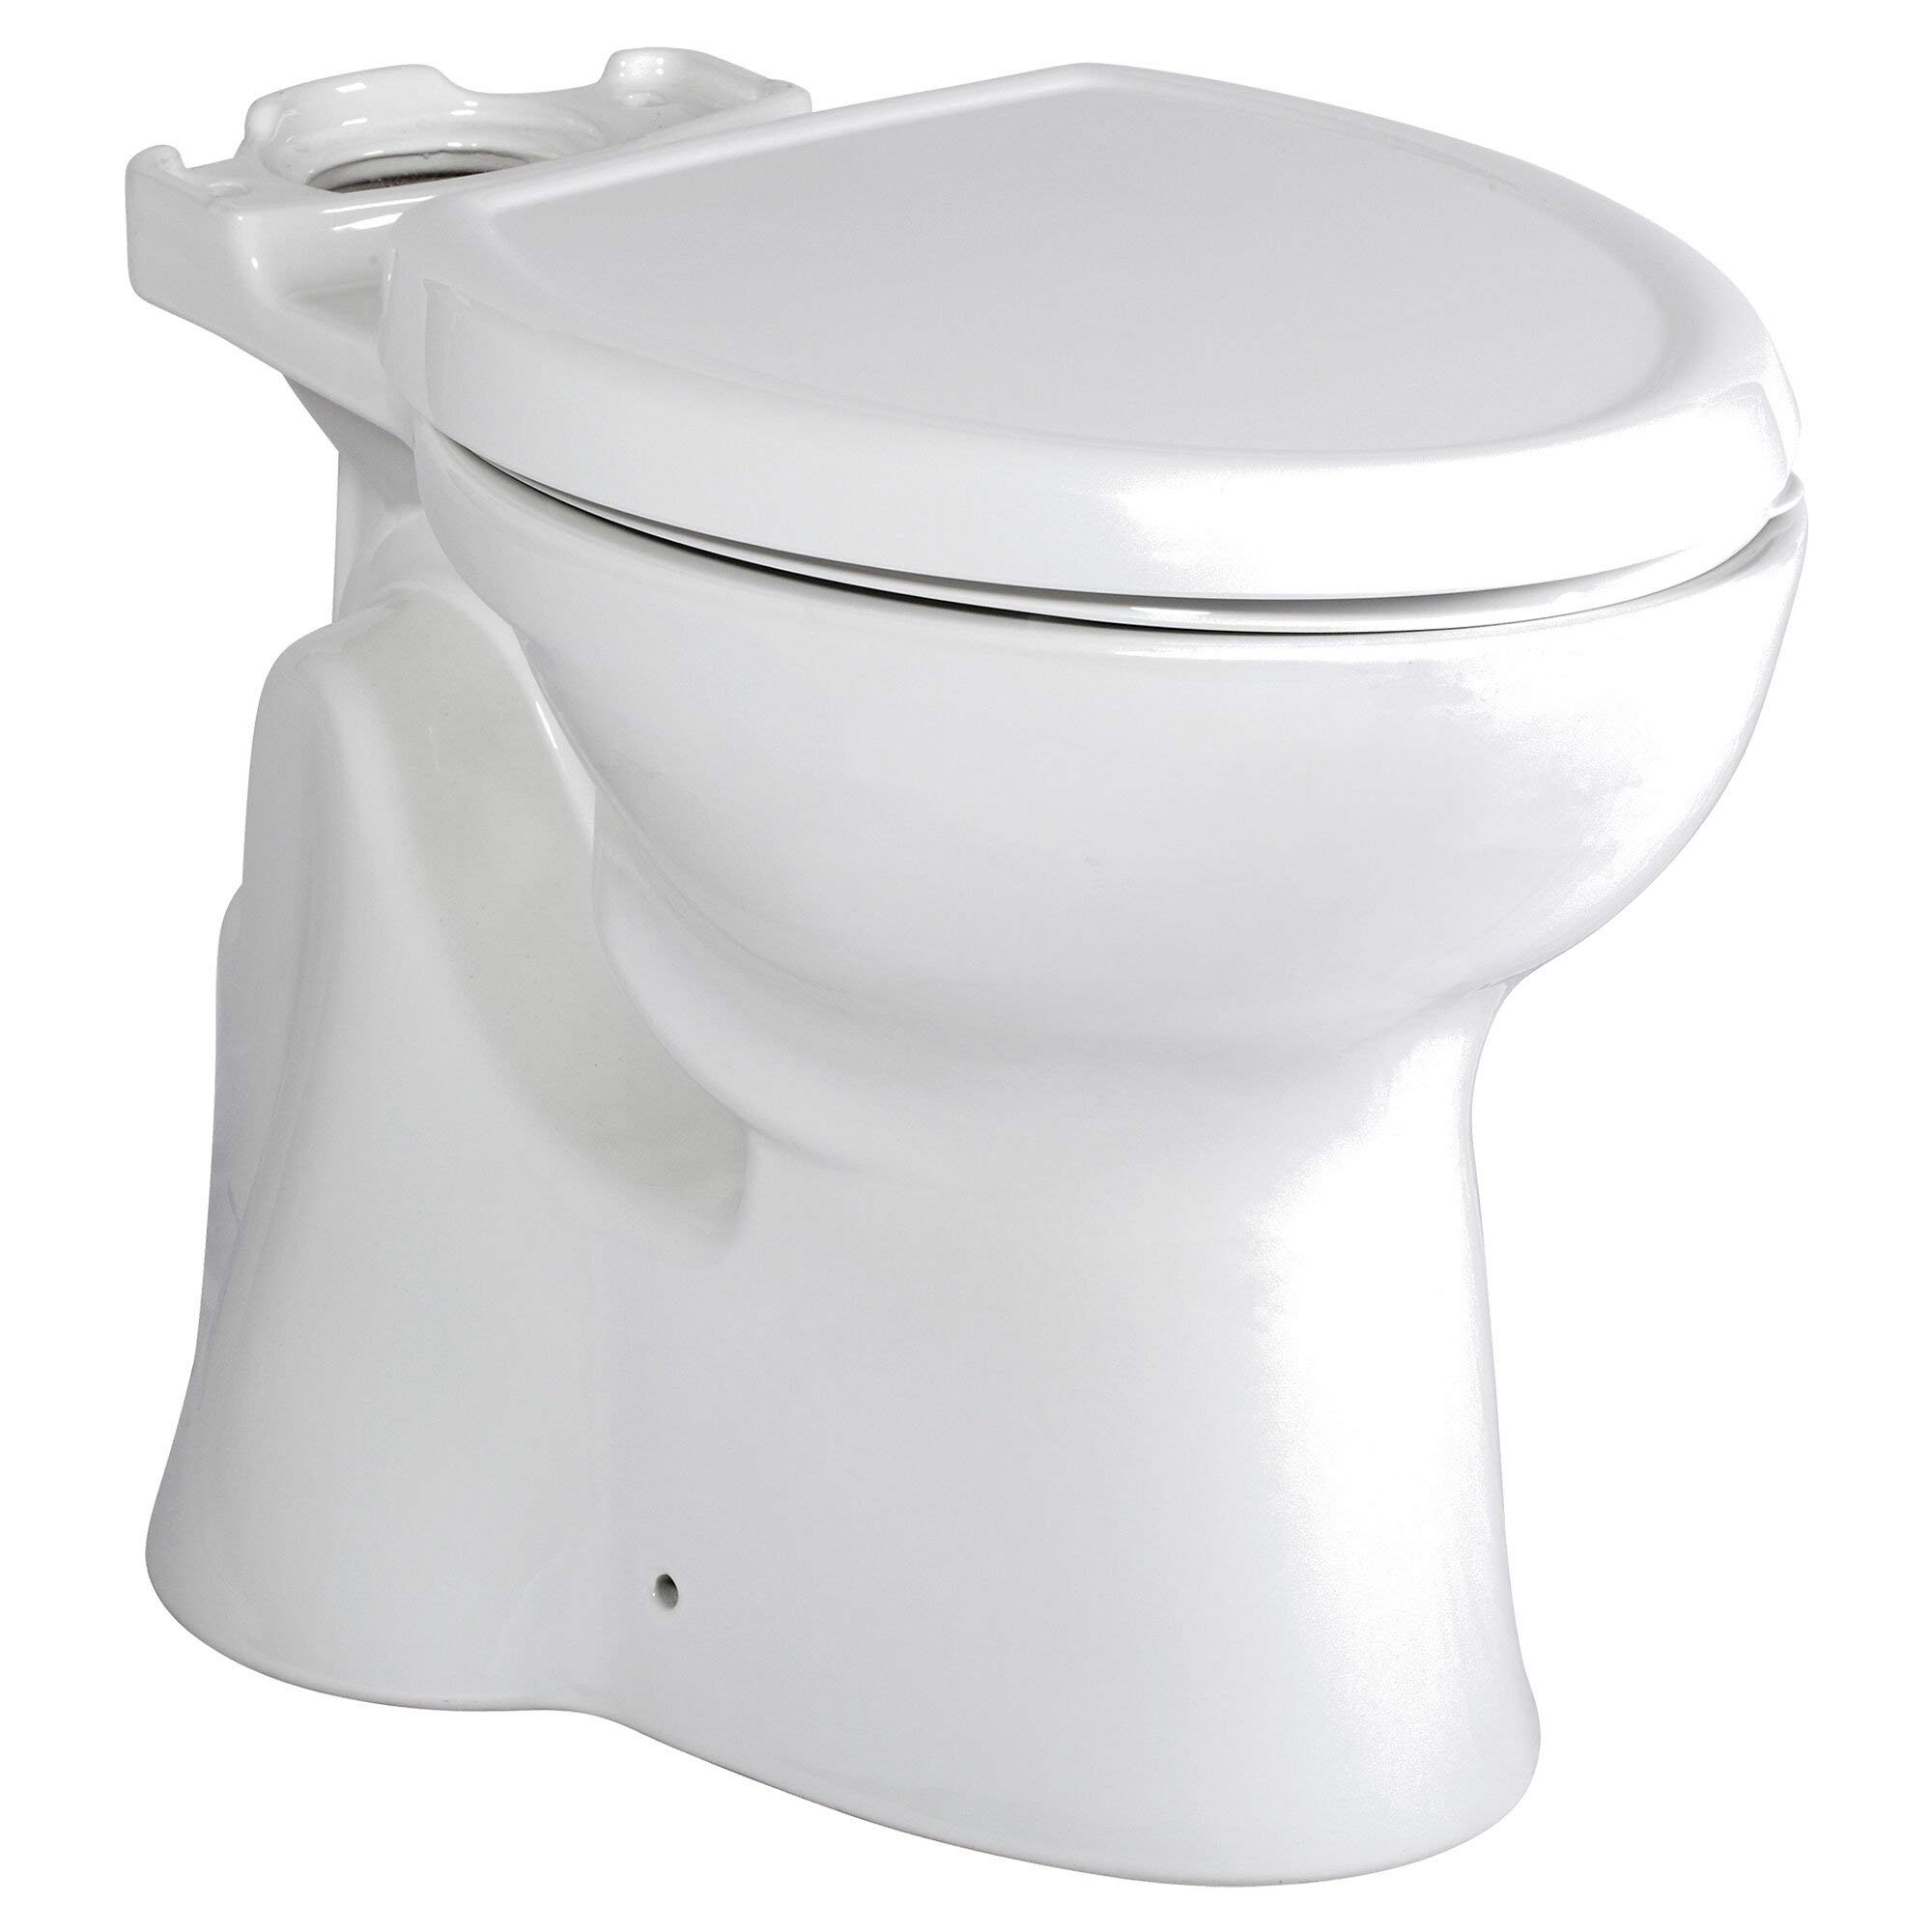 American Standard 3517AG100RS.020 AccessPRO Right Height Elongated Toilet Bowl Right with Seat, White